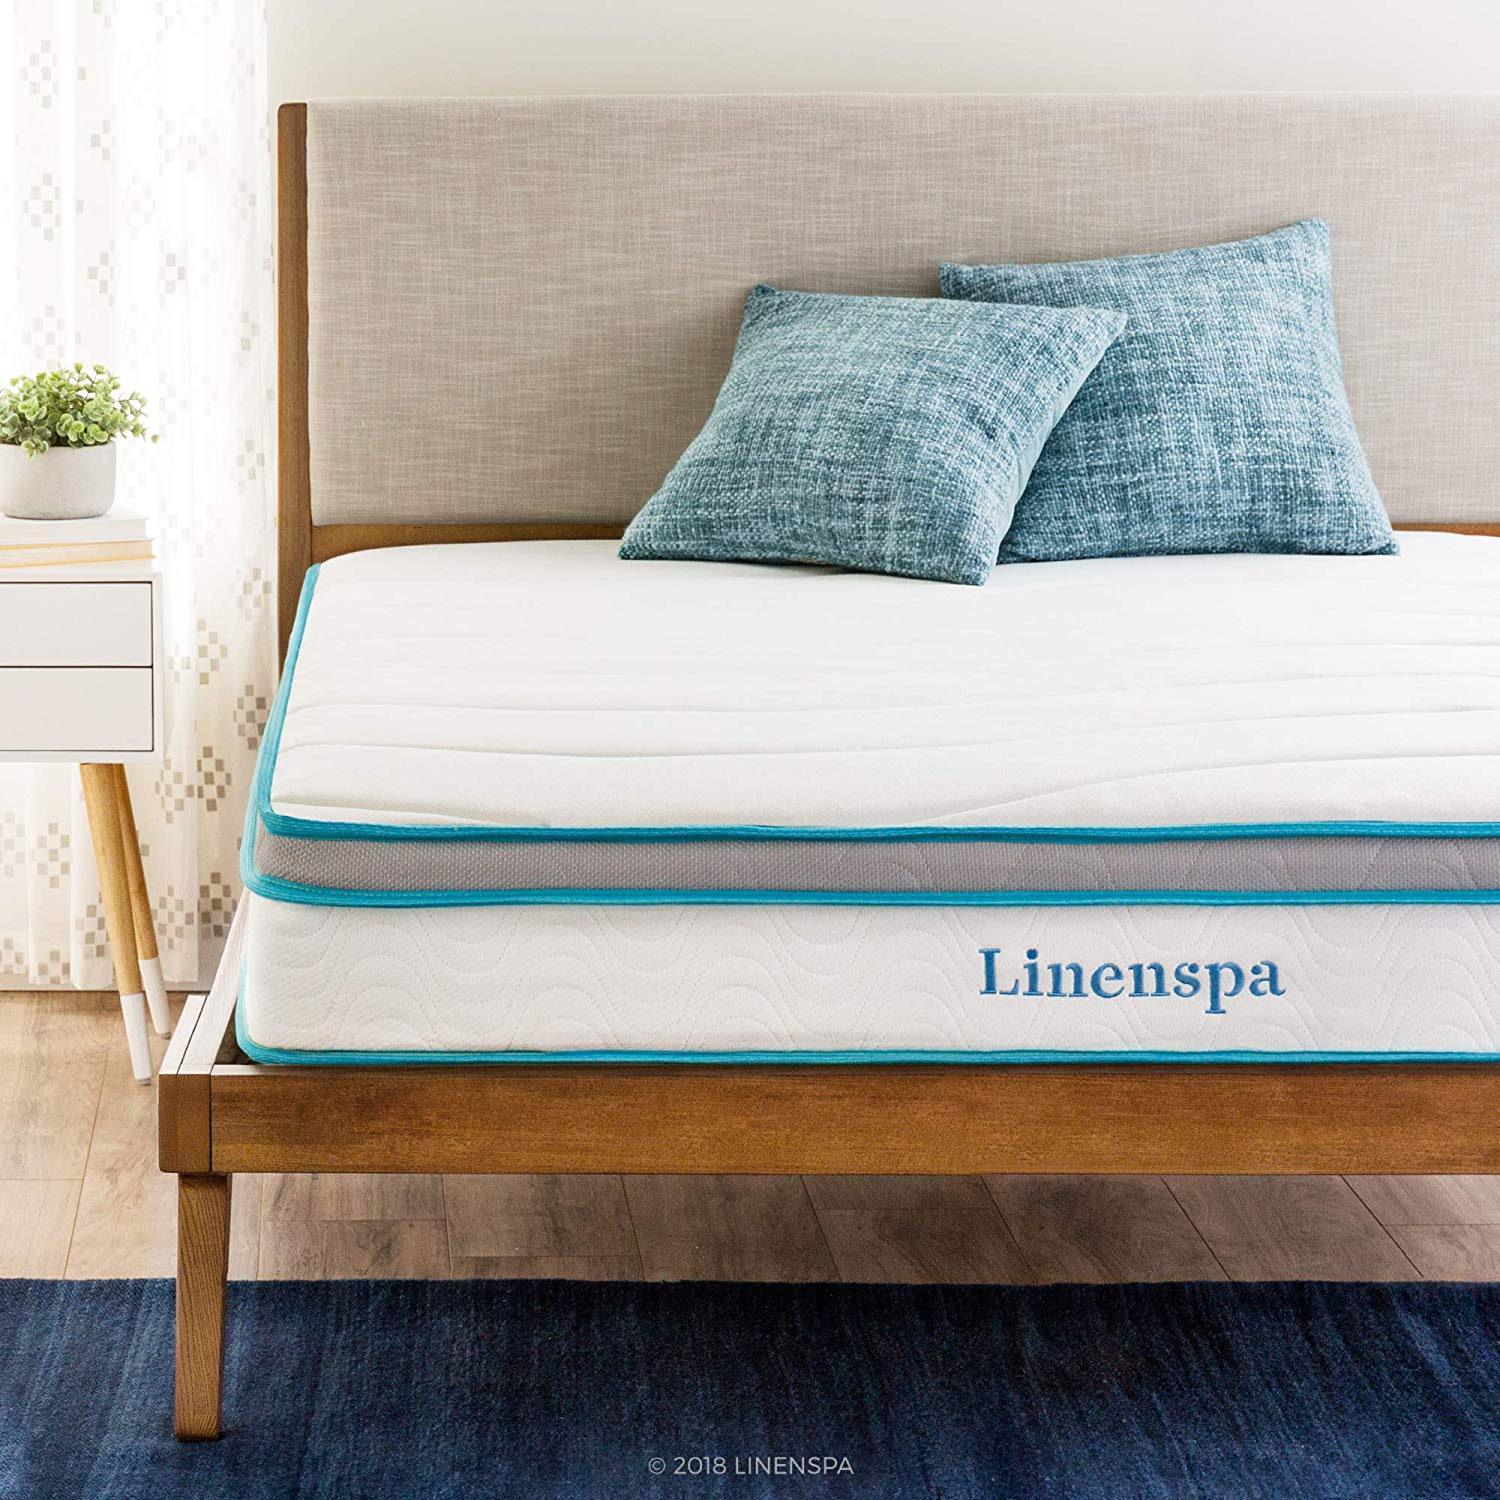 Linenspa Innerspring Mattress Brand